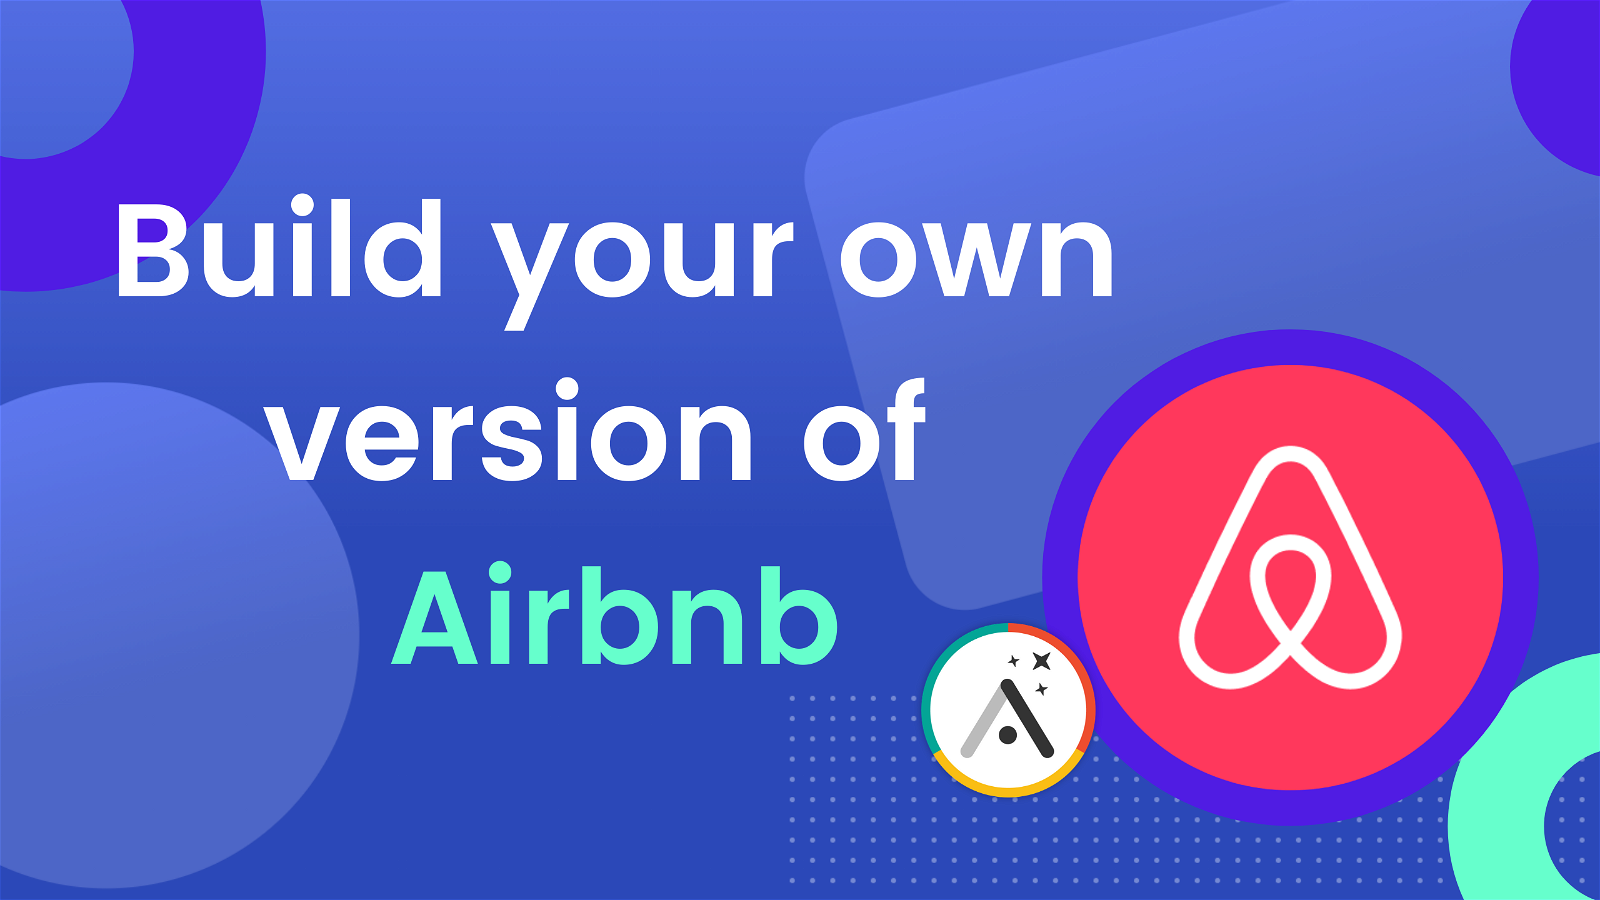 Build your own version of AirBnB Banner